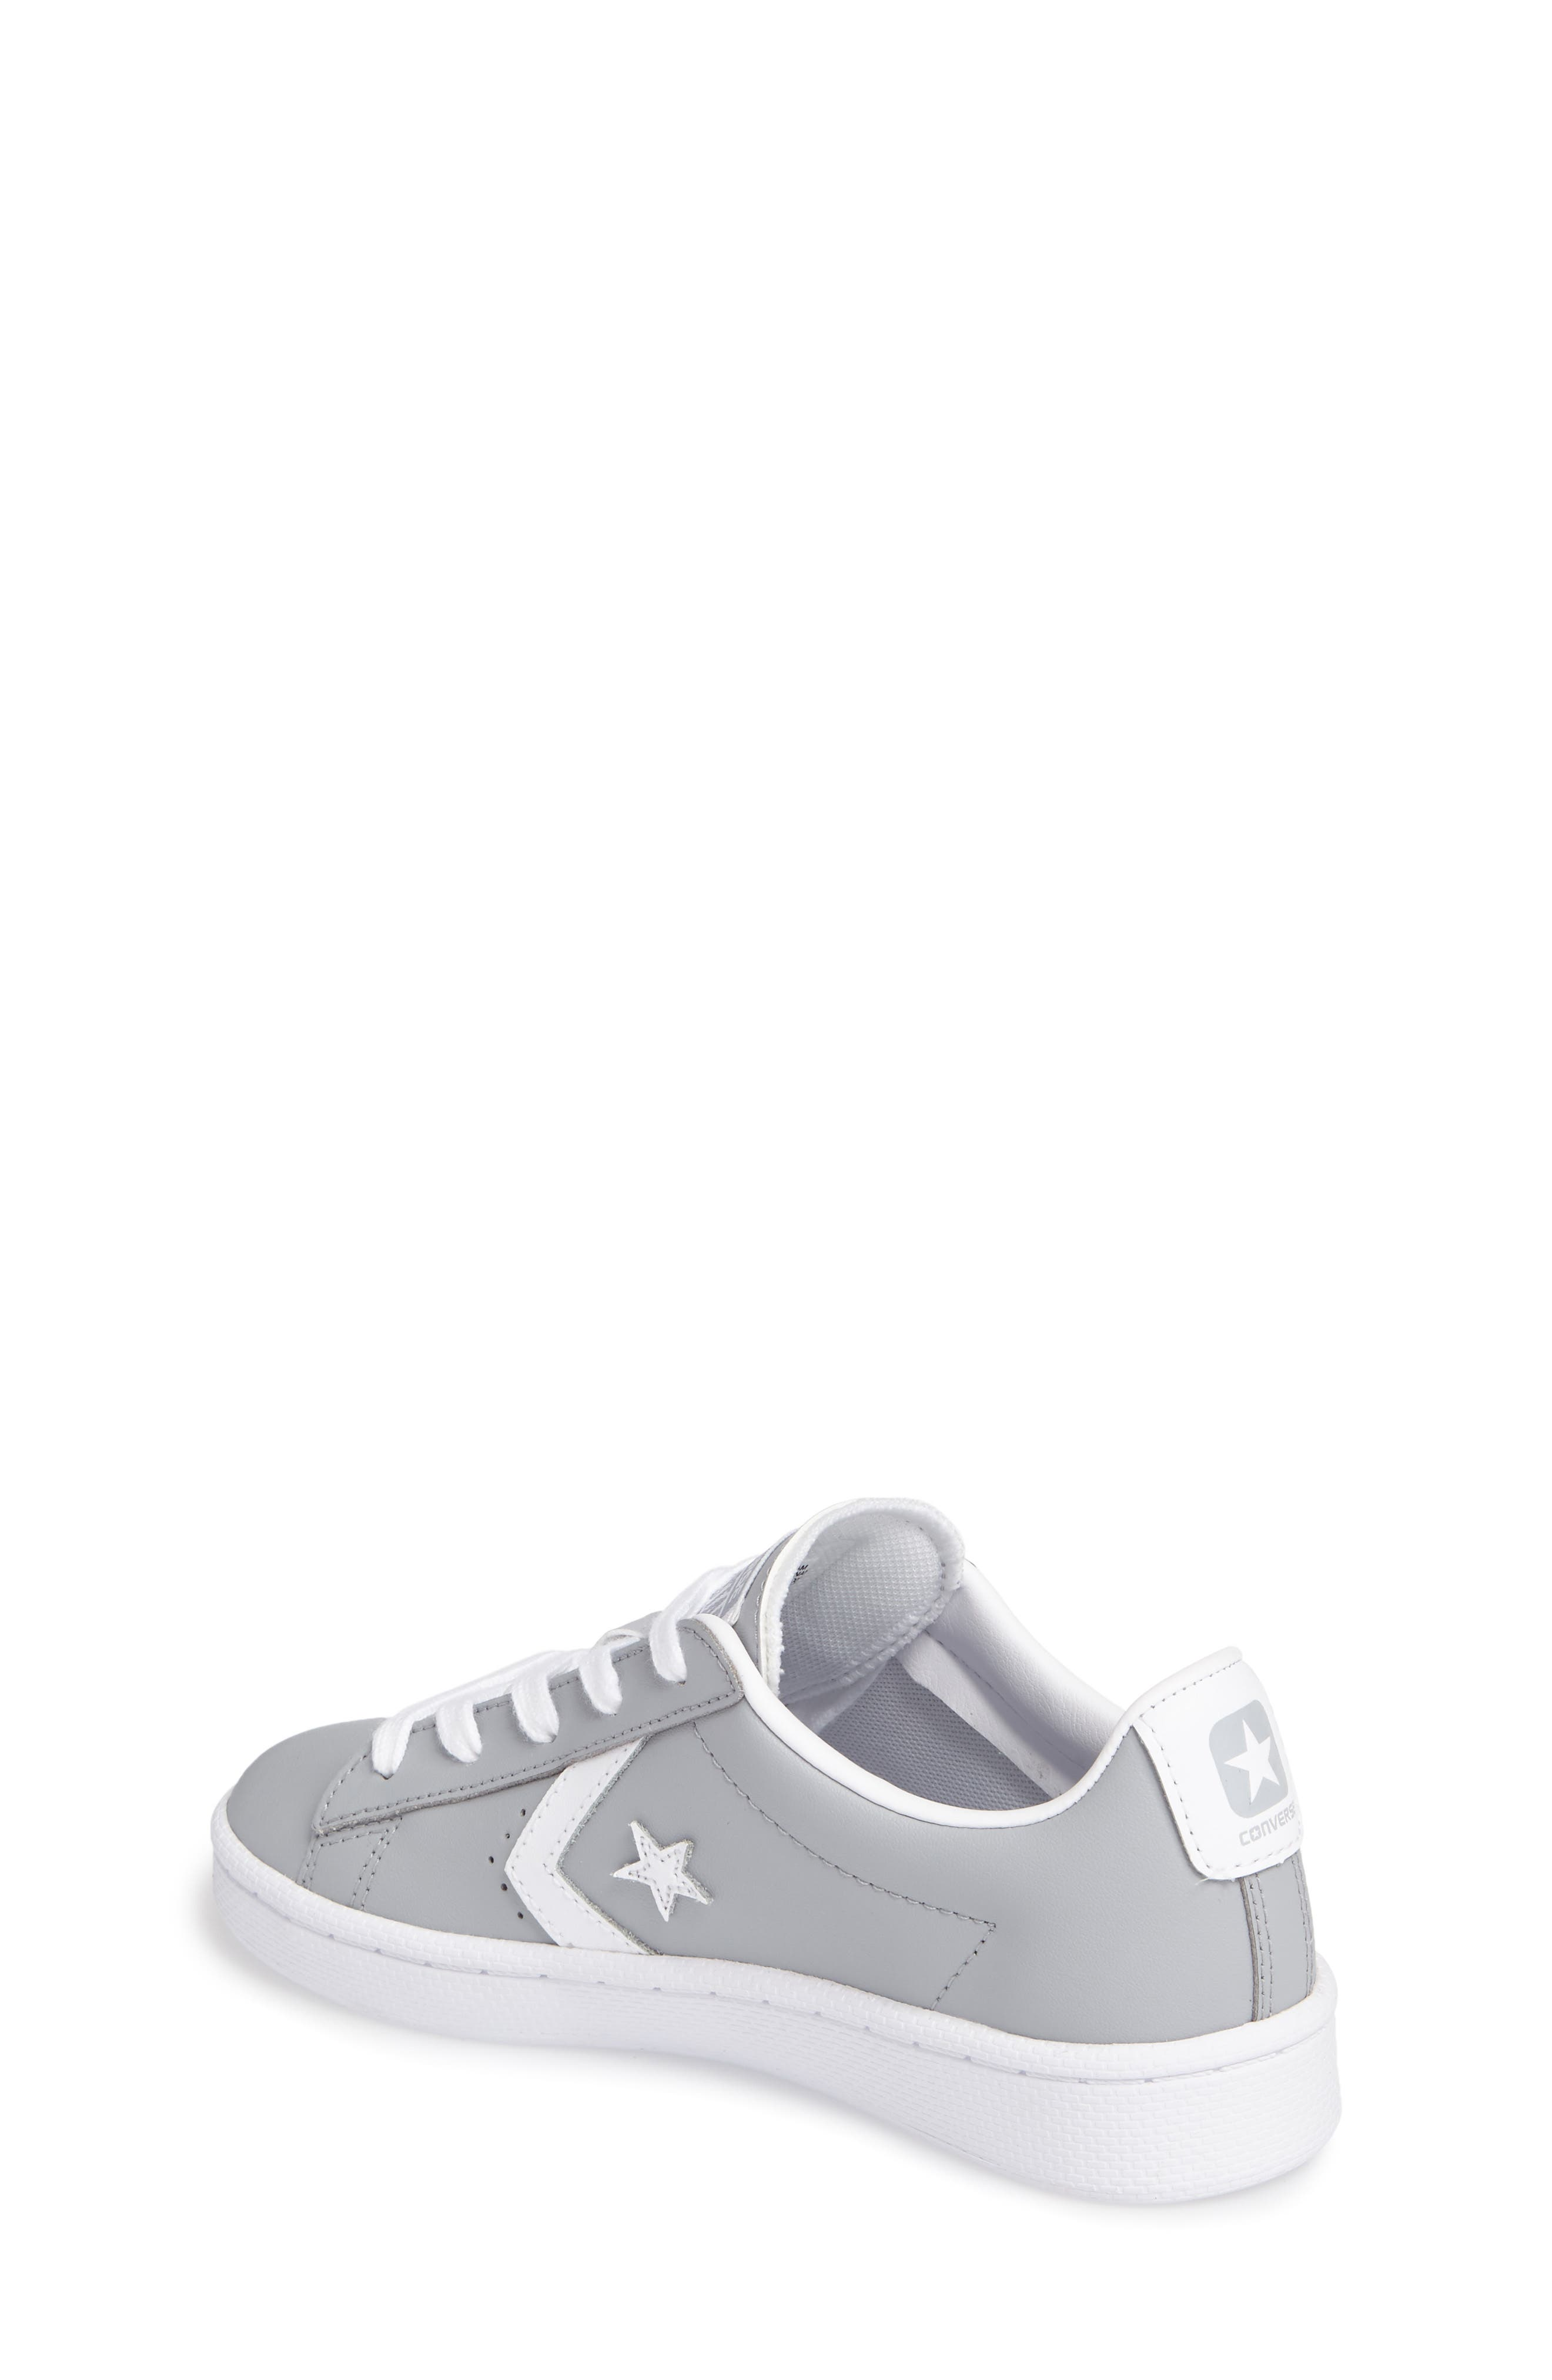 All Star<sup>®</sup> Pro Leather Low Top Sneaker,                             Alternate thumbnail 2, color,                             097